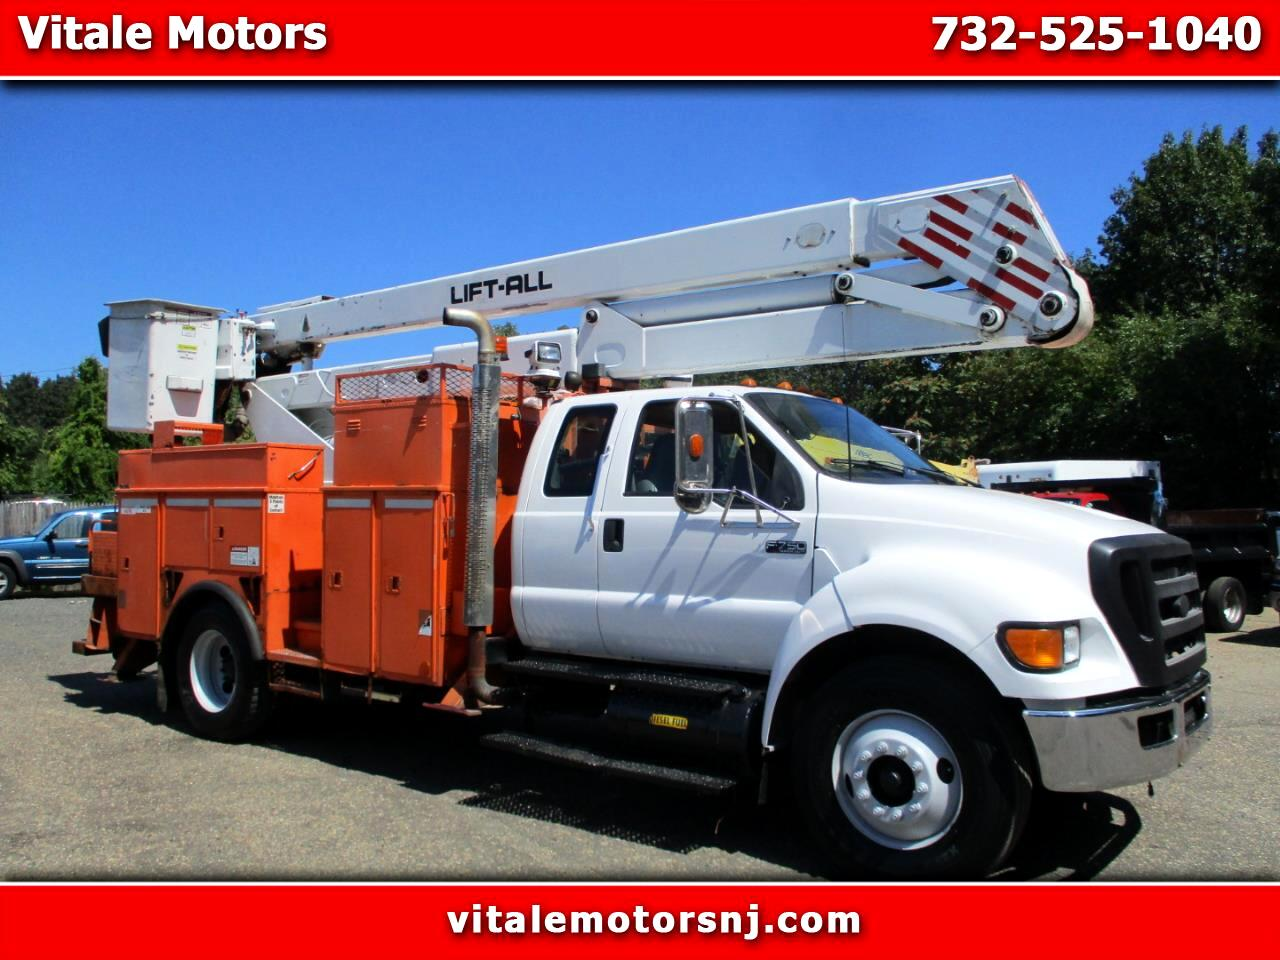 2006 Ford F-750 SUPER CAB BUCKET TRUCK 55 FOOT REACH